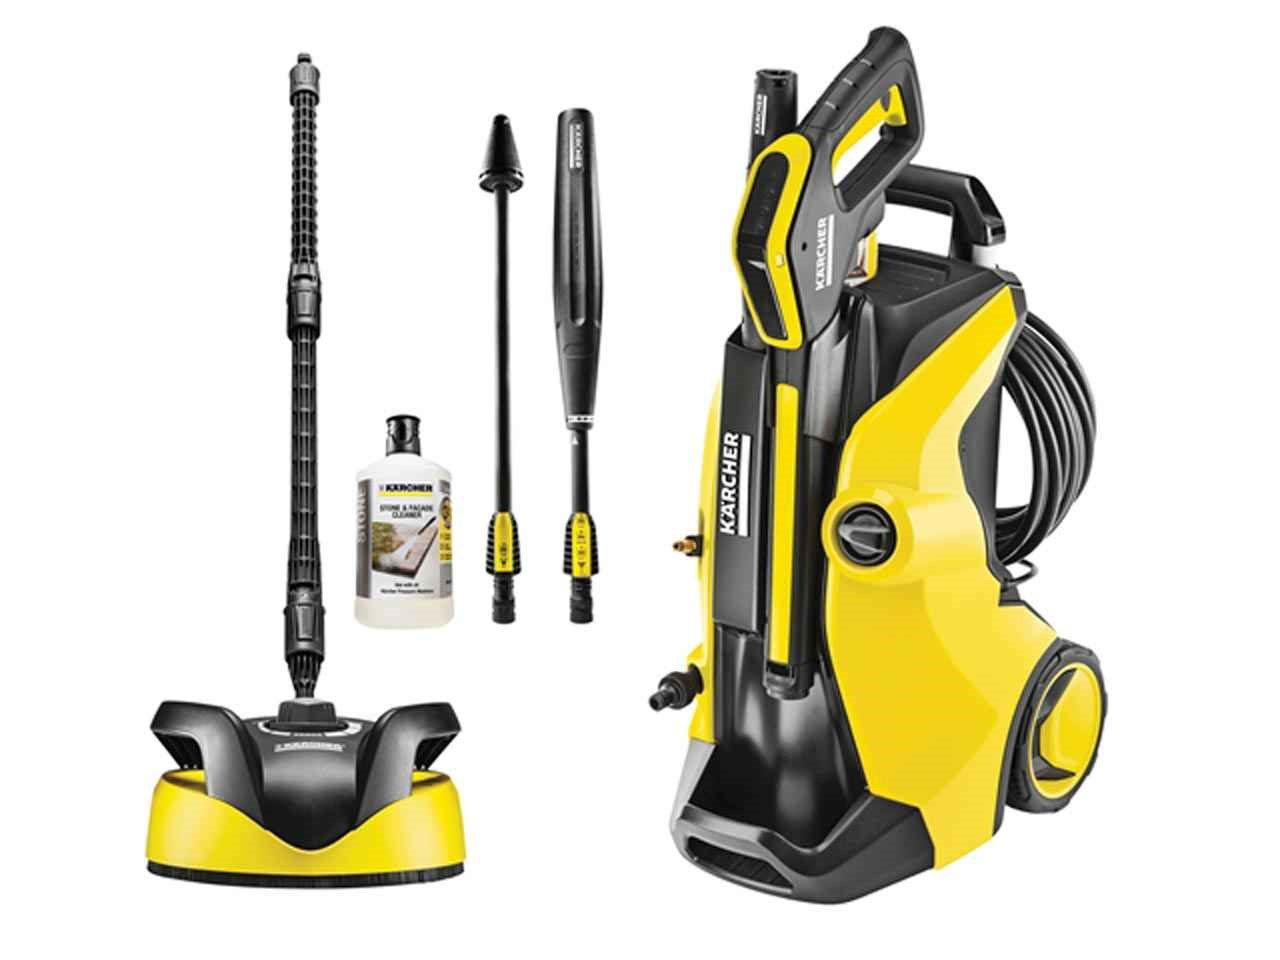 karcher kark5fch k5 full control home pressure washer 145 bar 240v. Black Bedroom Furniture Sets. Home Design Ideas